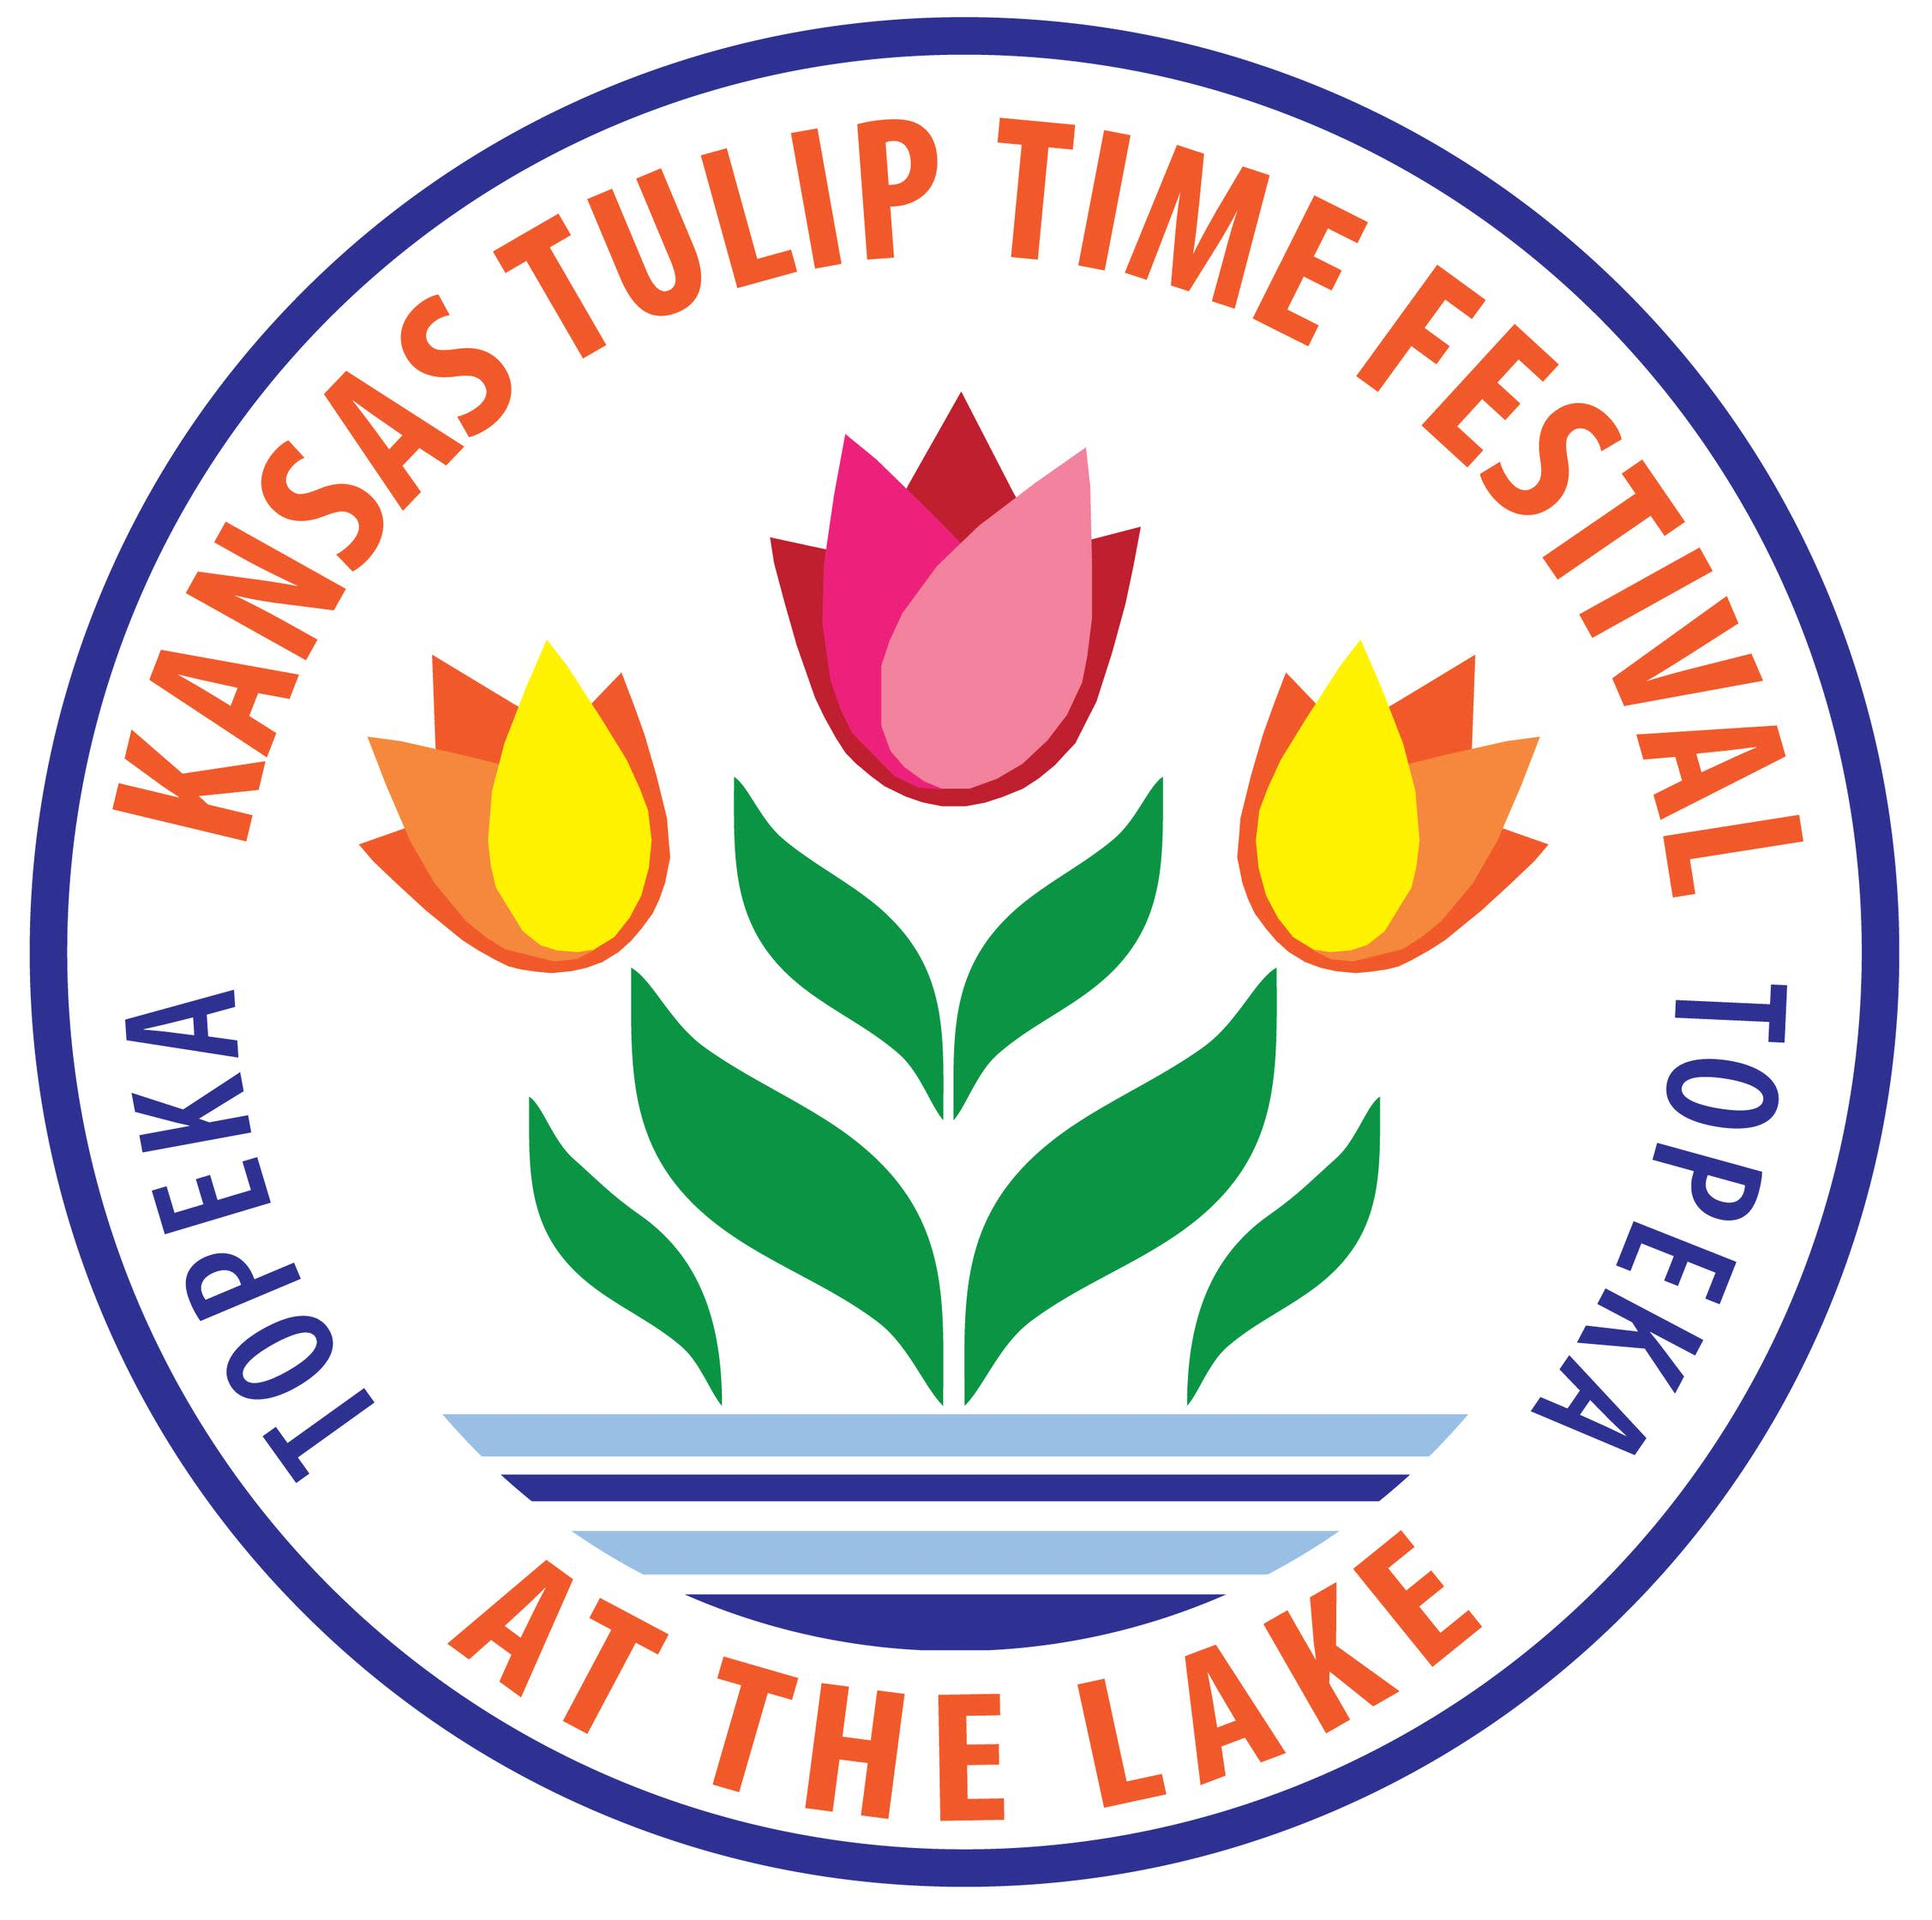 Tulip Time Festival Day at the Lake logo - words in circle around drawing of tulip.